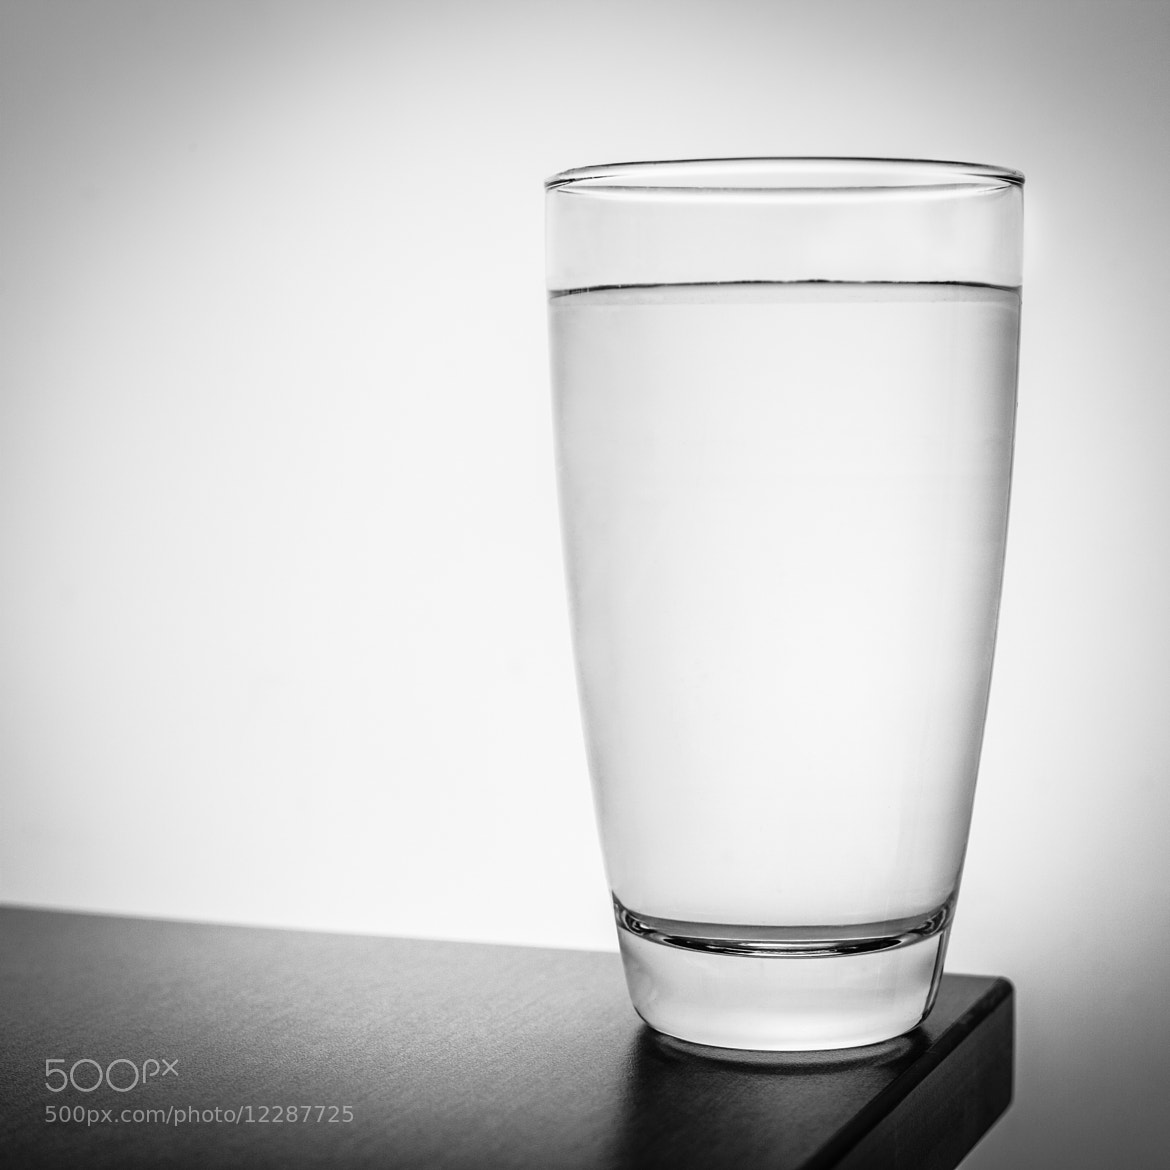 Photograph Glass of Water by carlos restrepo on 500px